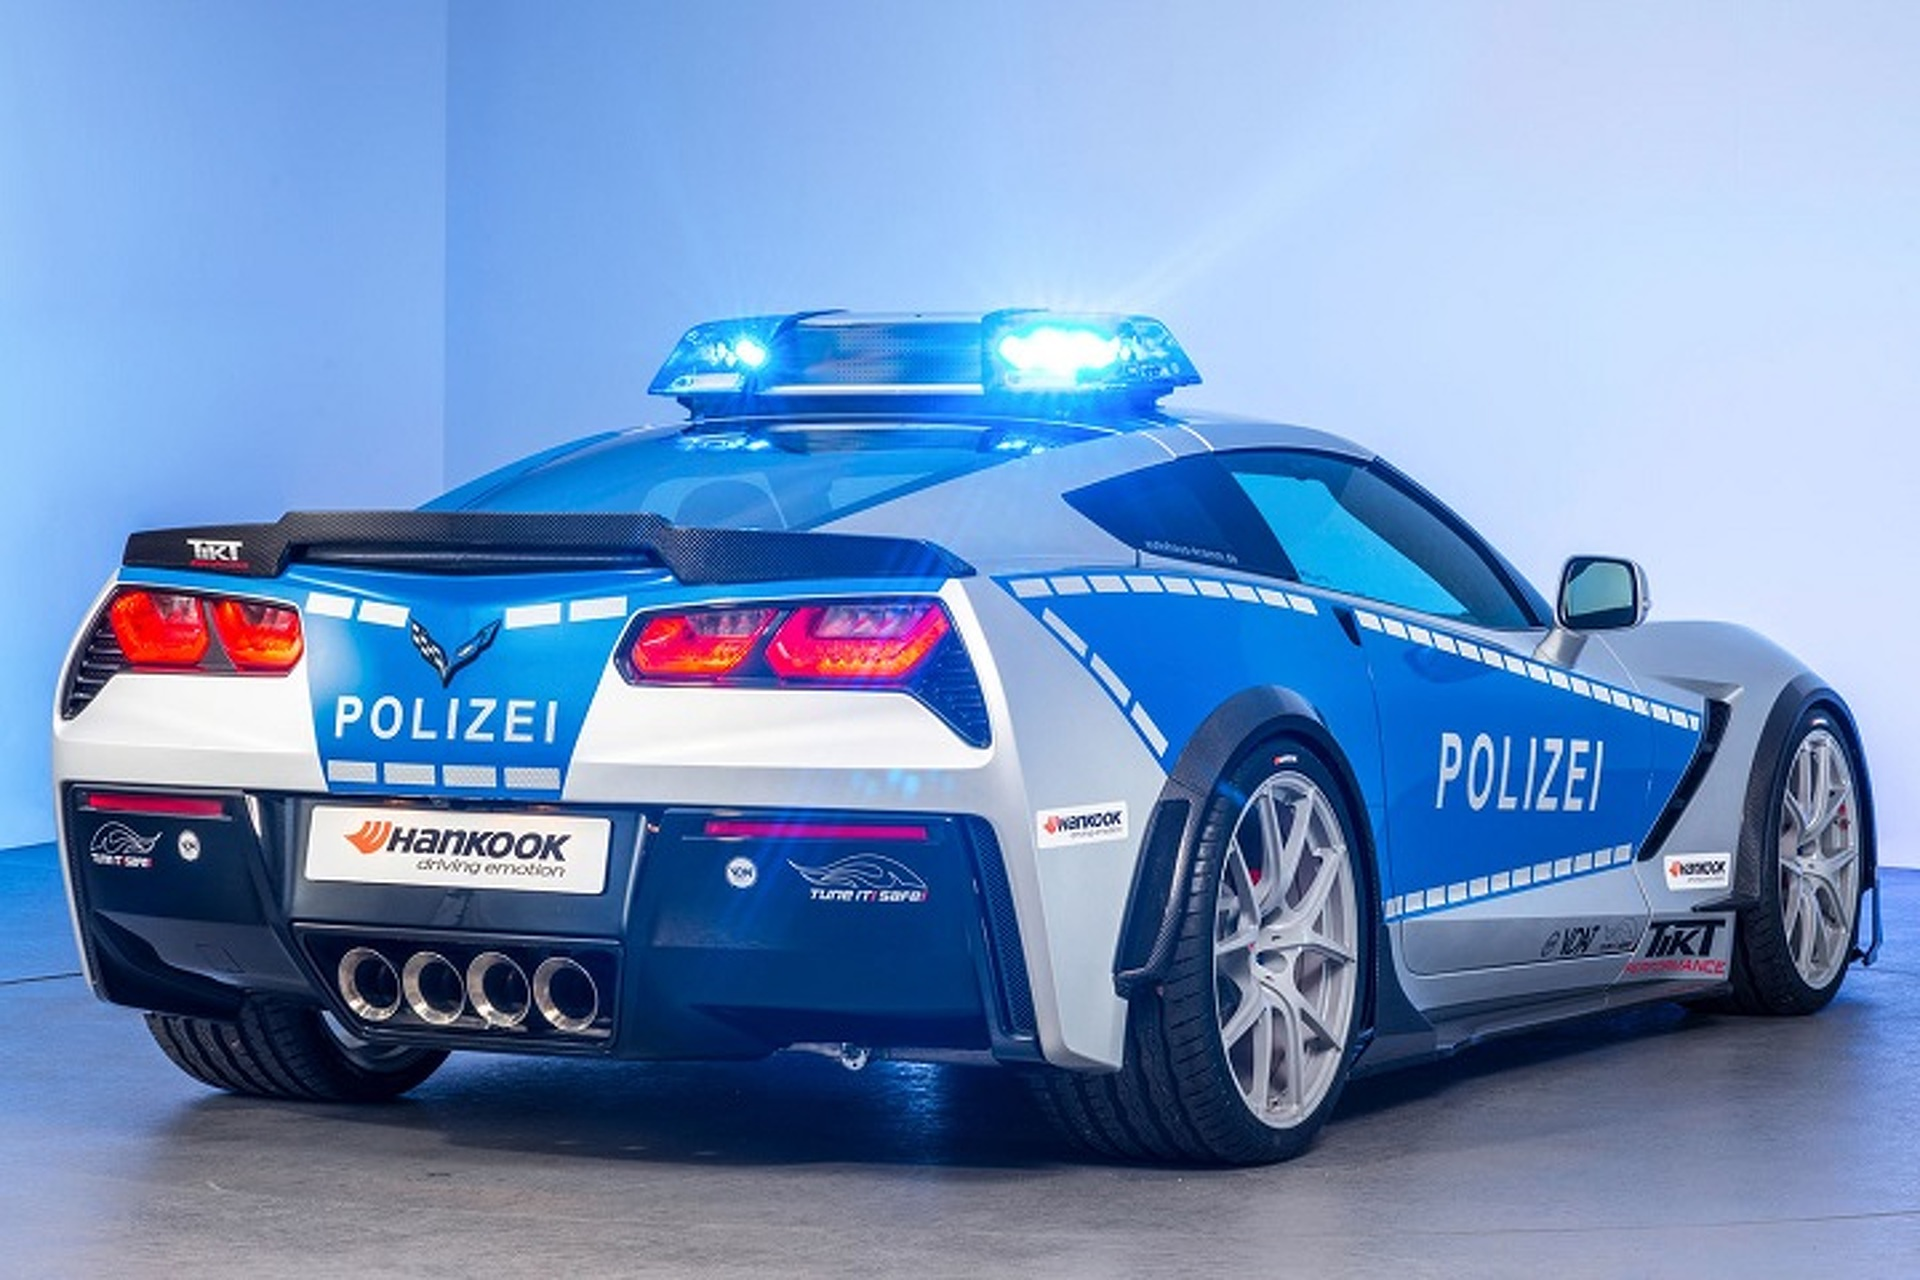 Good Luck Outrunning This Corvette Police Car